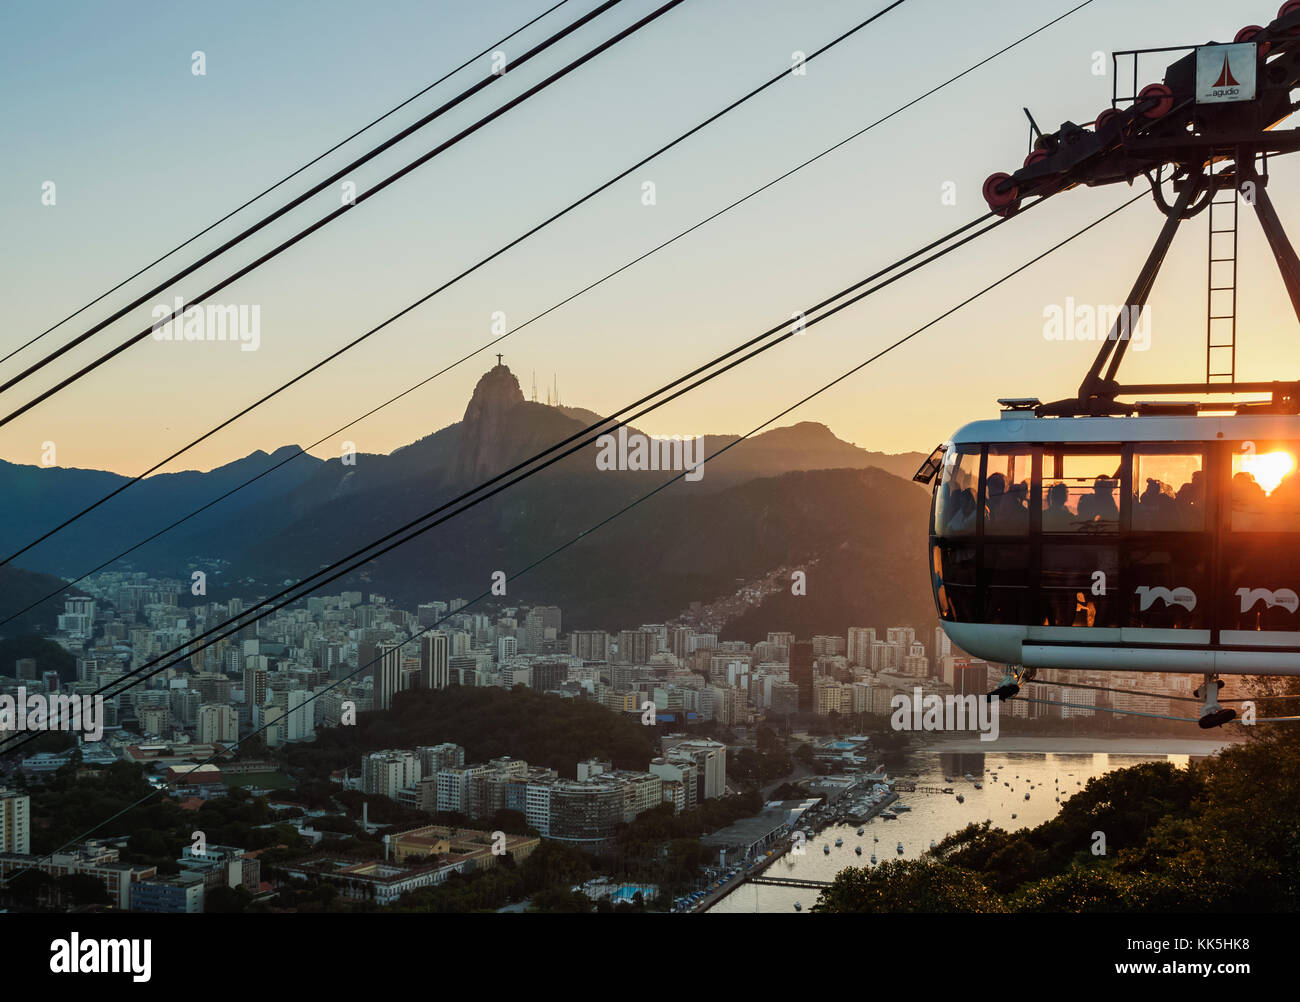 Cable Car to Morro da Urca and Sugarloaf Mountain at sunset, Rio de Janeiro, Brazil Stock Photo